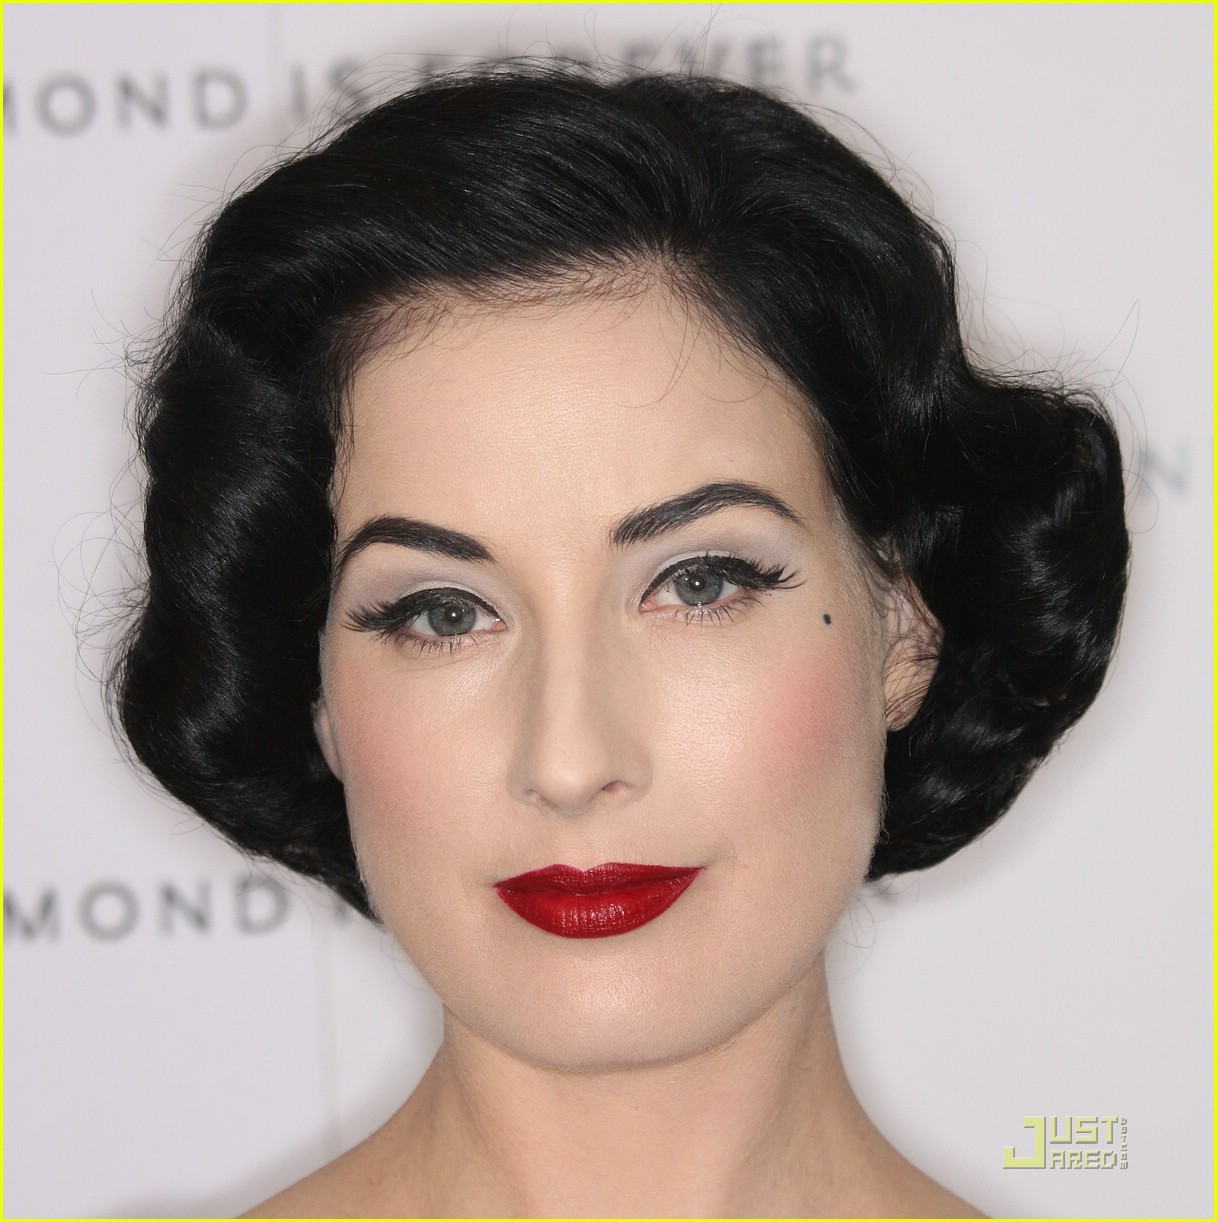 dita von teese a diamond is forever photo 1742821 dita von